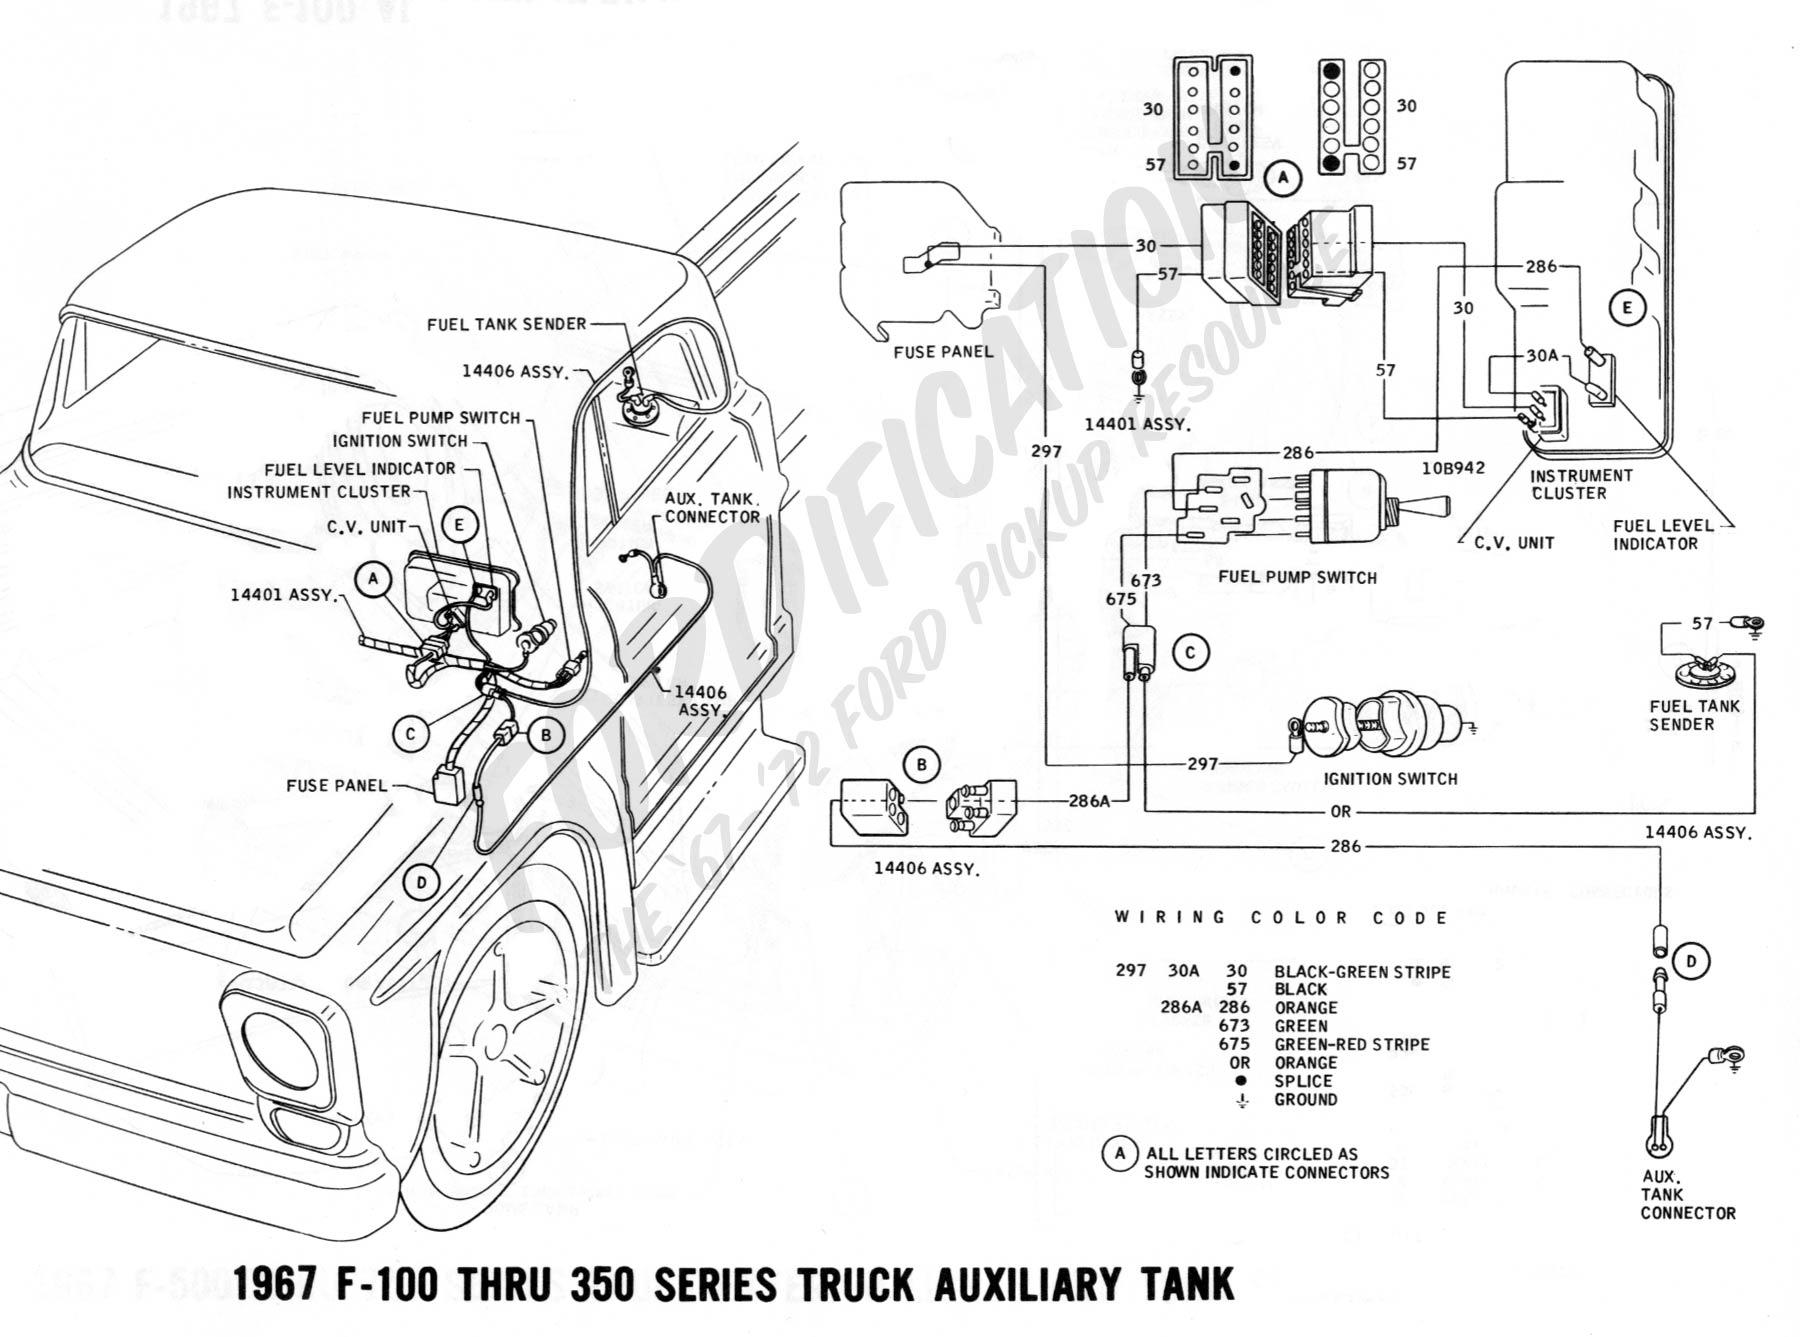 ford truck technical drawings and schematics section h wiring 1967 f 100 thru f 350 auxiliary fuel tank